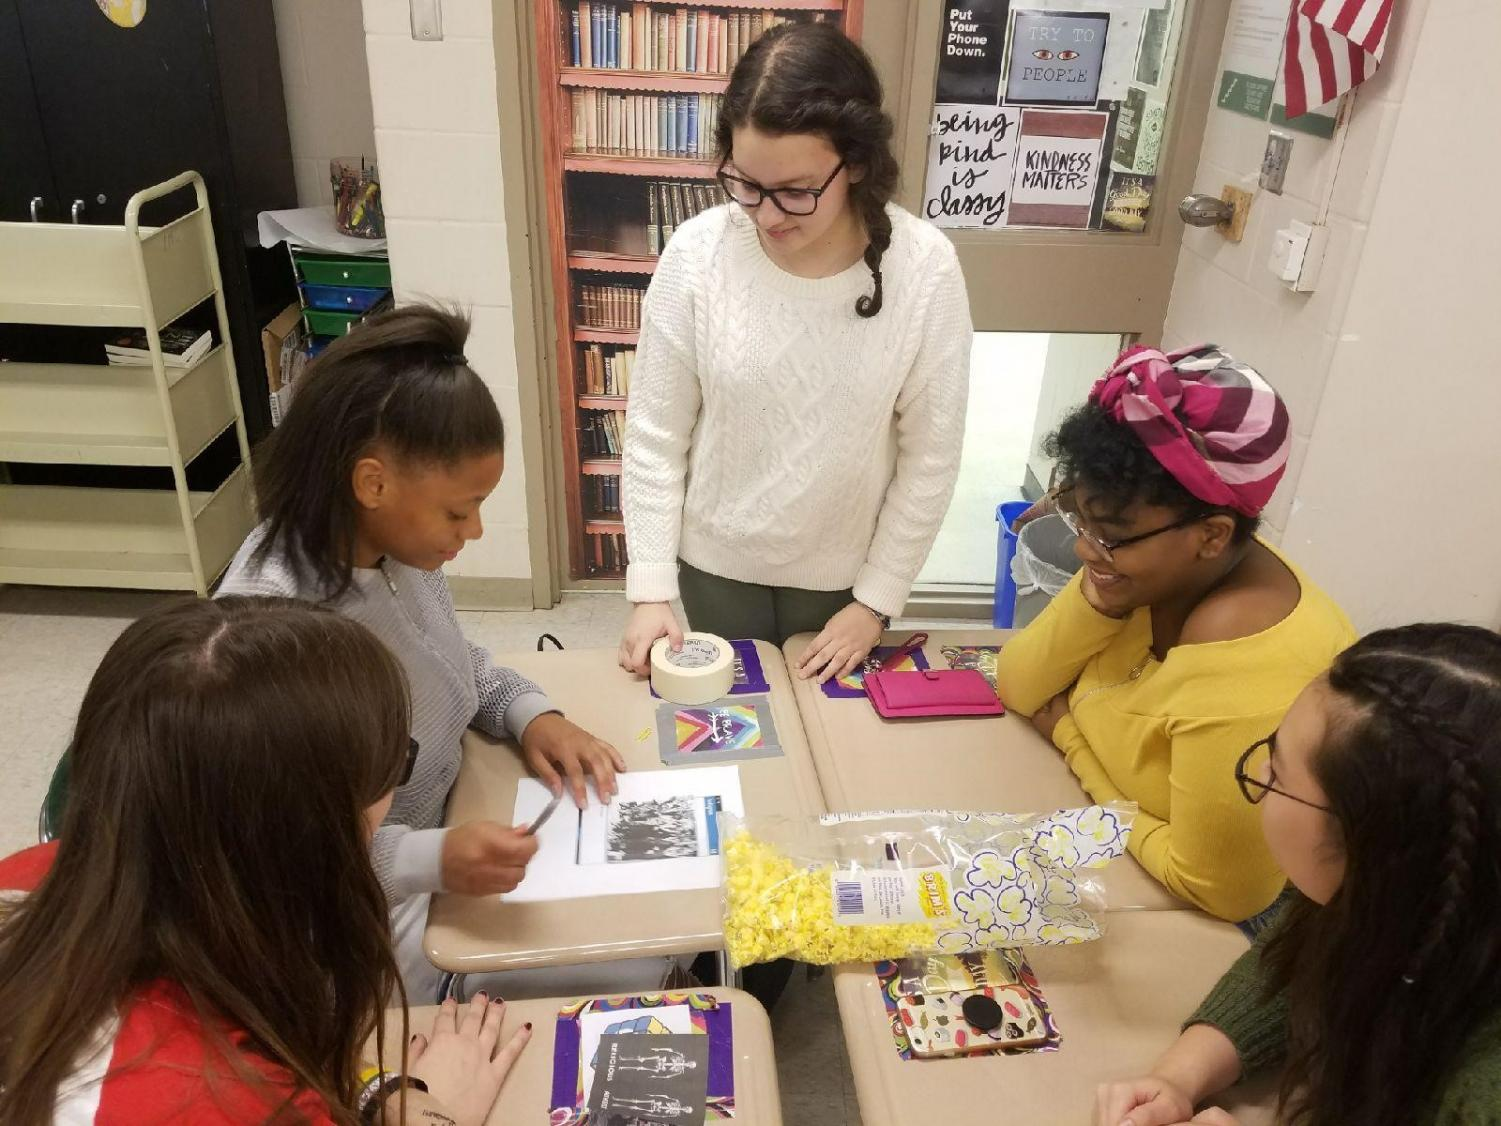 Mollie Davis leads a group of students in a small project at the most recent Women's Studies Club showing the important role of positive media.